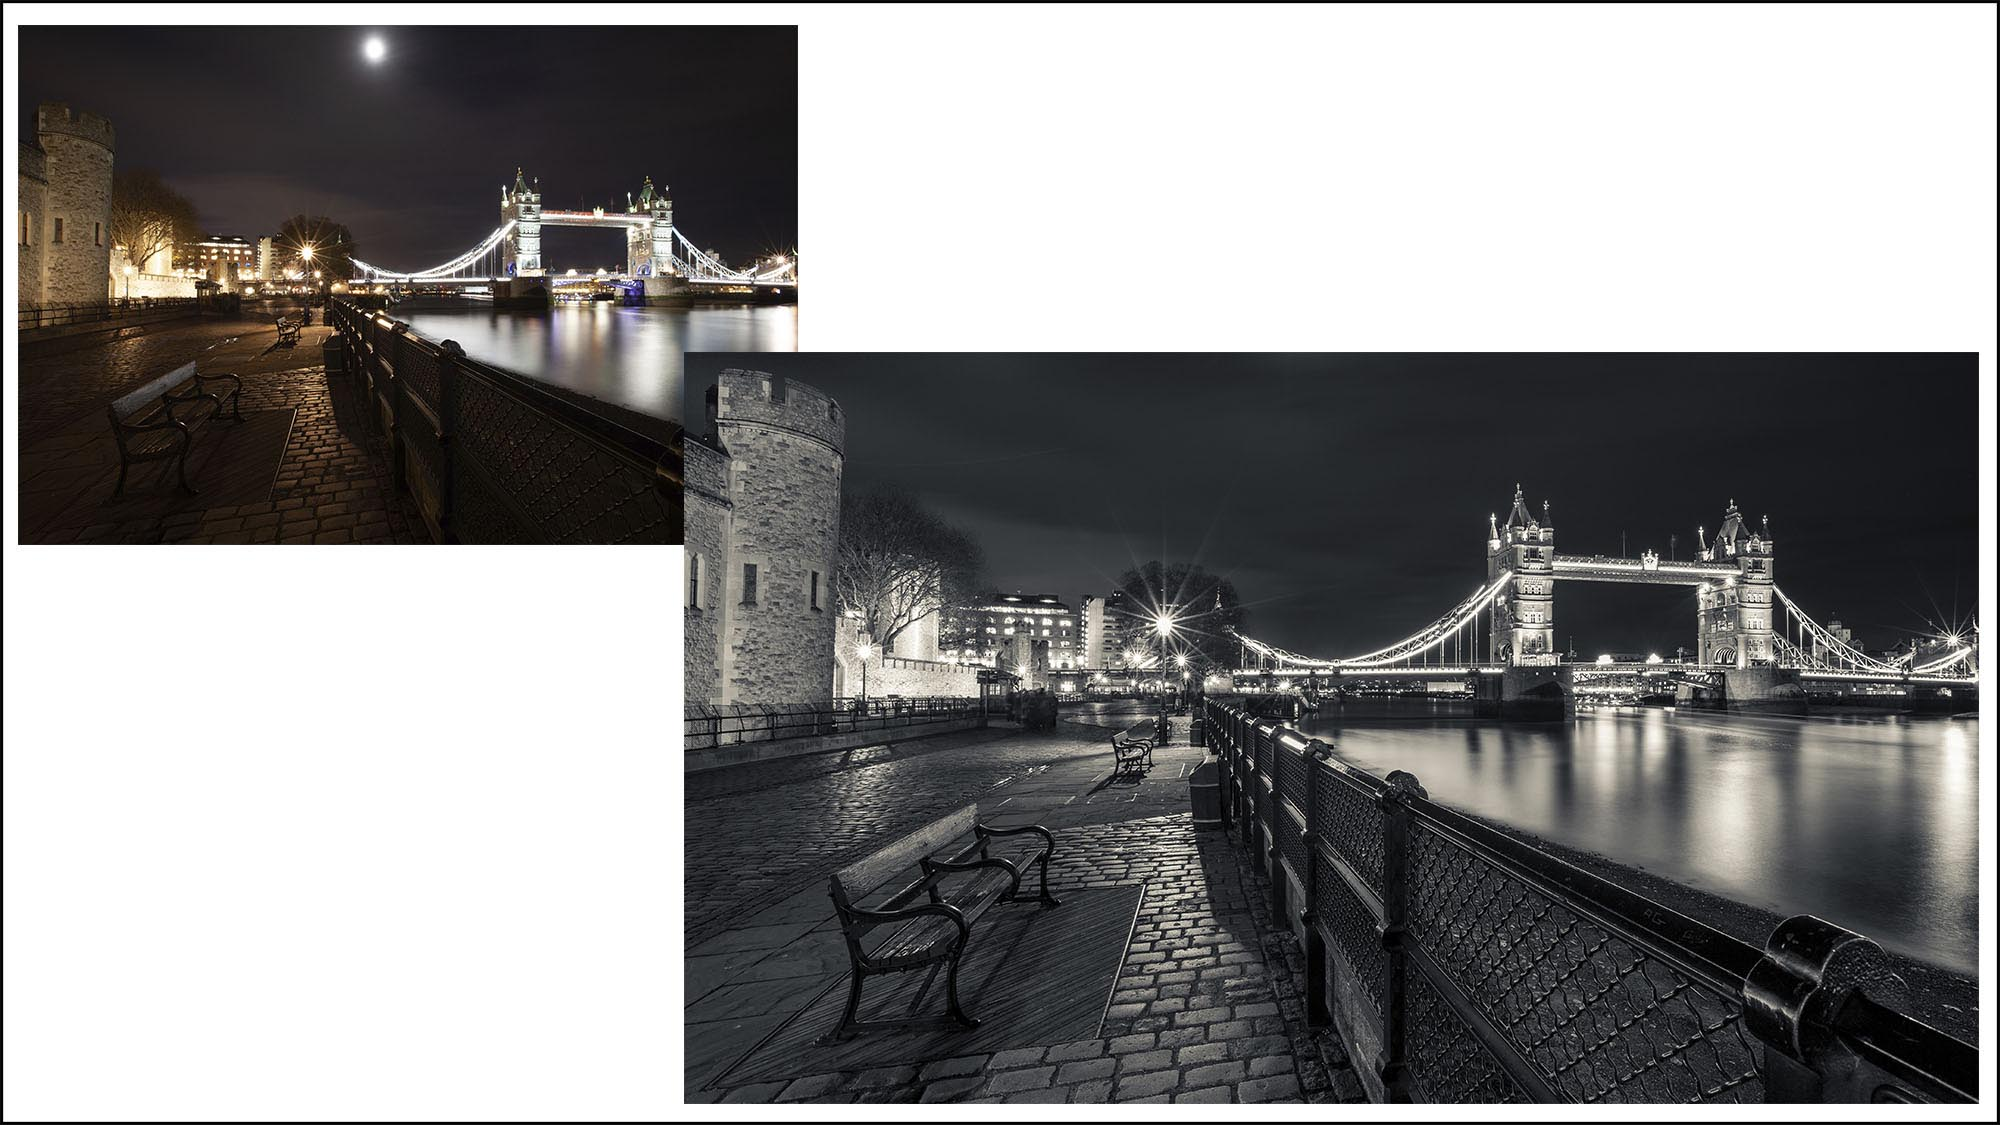 Lesson 10 – London at night - Edit - In this edit, I'll teach you how to enhance night photography in Lightroom. We'll change the shot black and white, enhance contrast, darken highlights, balance the exposure of the scene with range masking, and add split toning. We'll then go into Photoshop to remove people from the pathway. Again, the Raw files are provided so you can work along and learn with me.